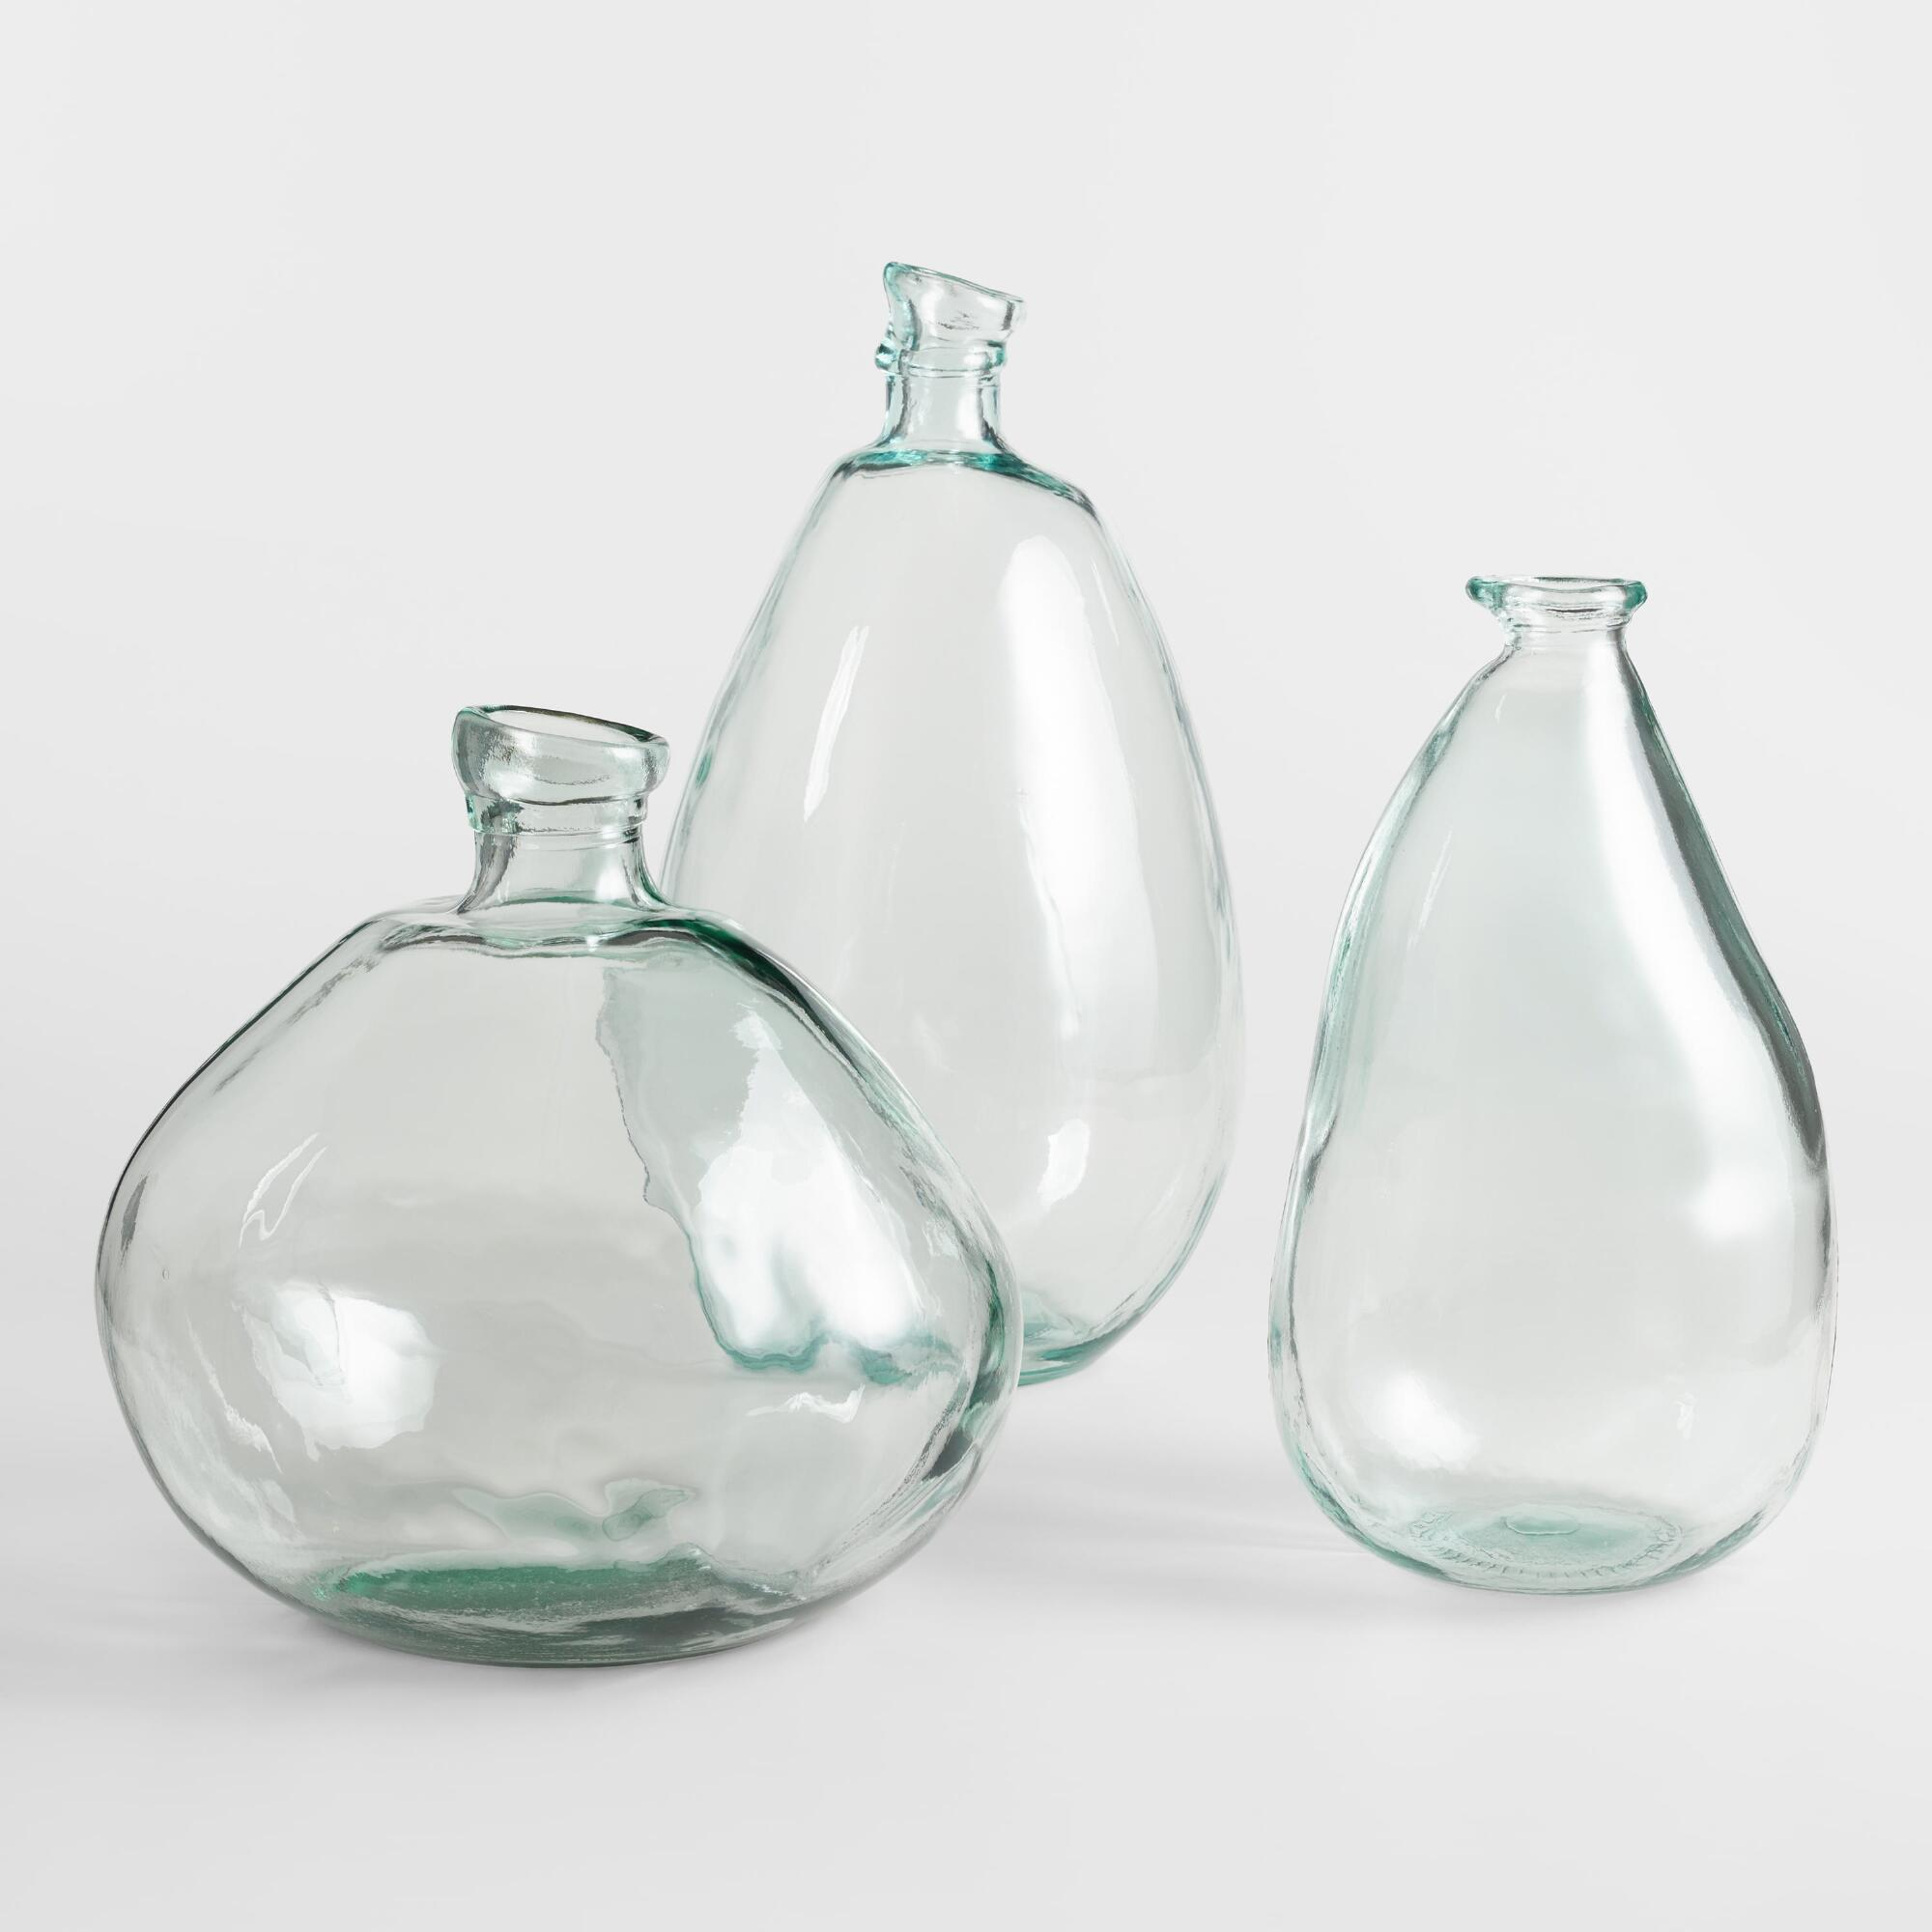 Glass vases photo